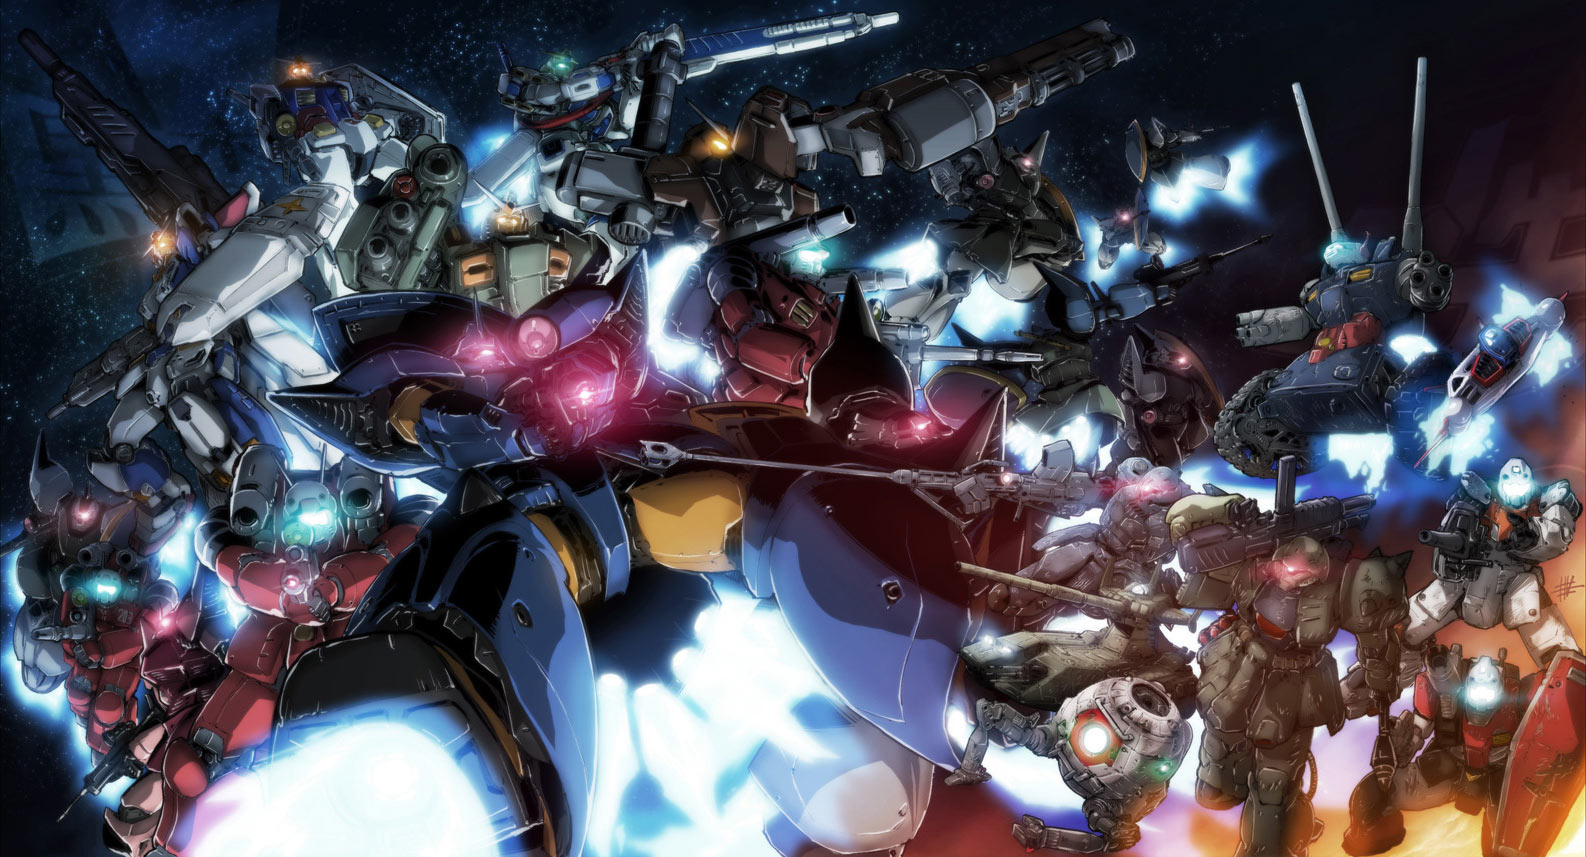 Awesome Gundam Wallpaper   Gundam Kits Collection News and Reviews 1586x857